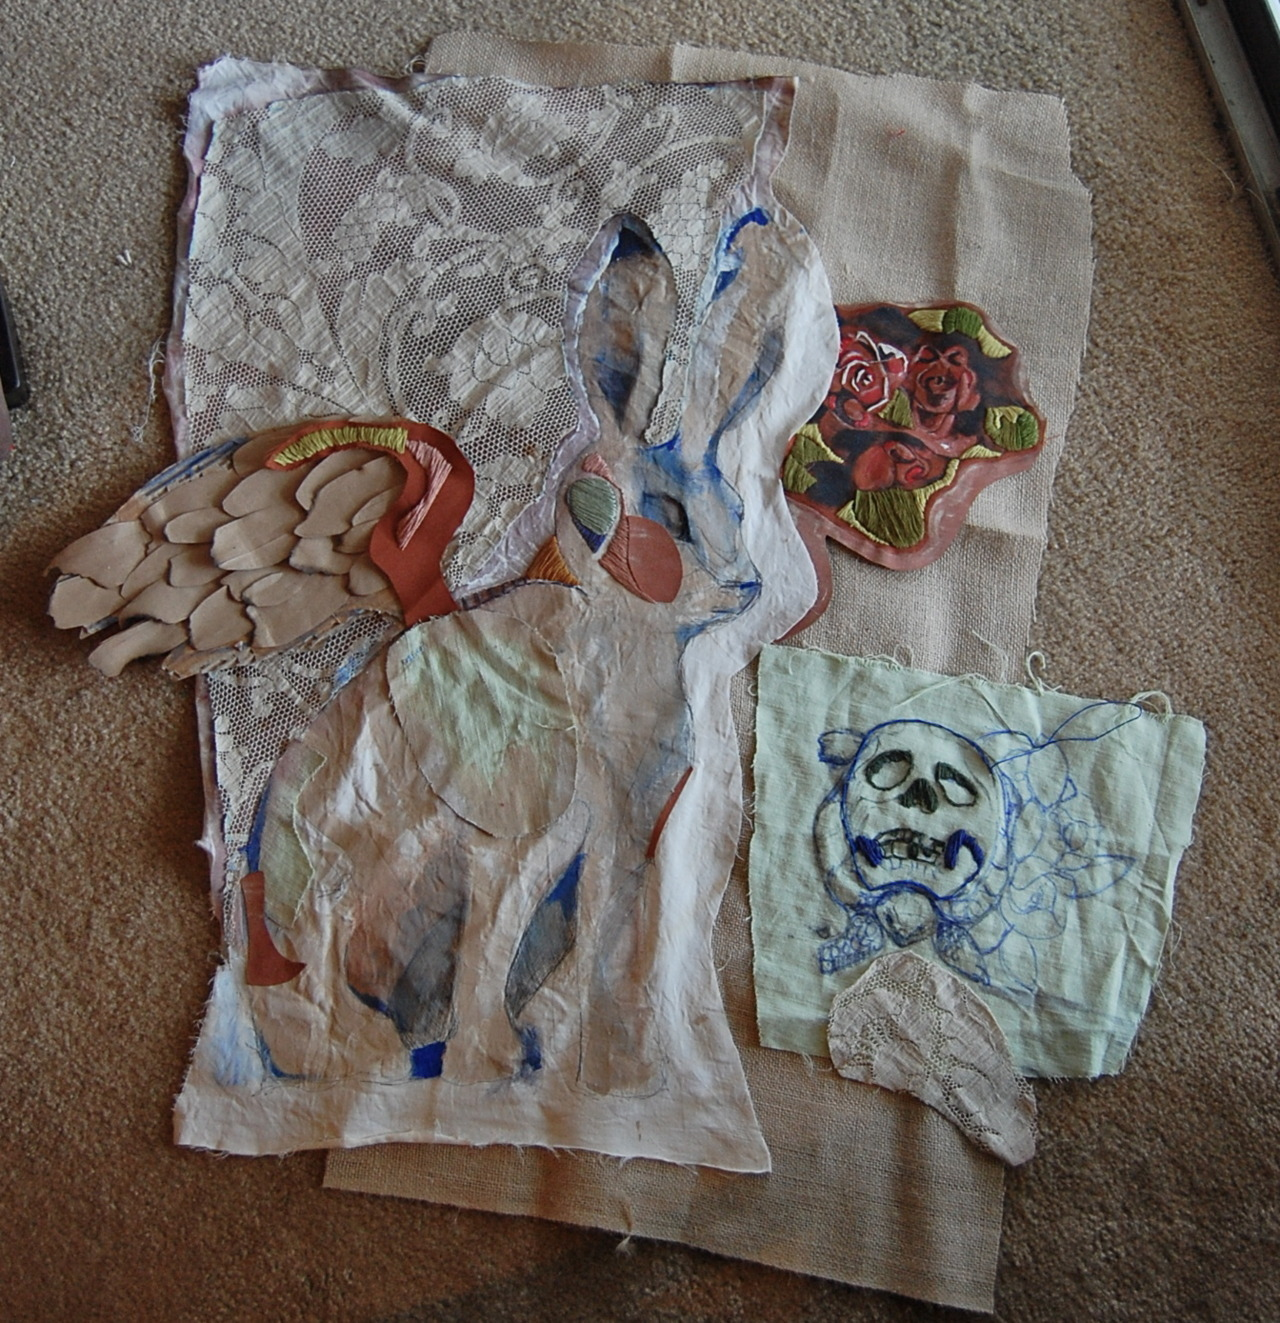 the59thstreetbridge:  Progress of my mixed media quilt, eventually I'll attach all the pieces together